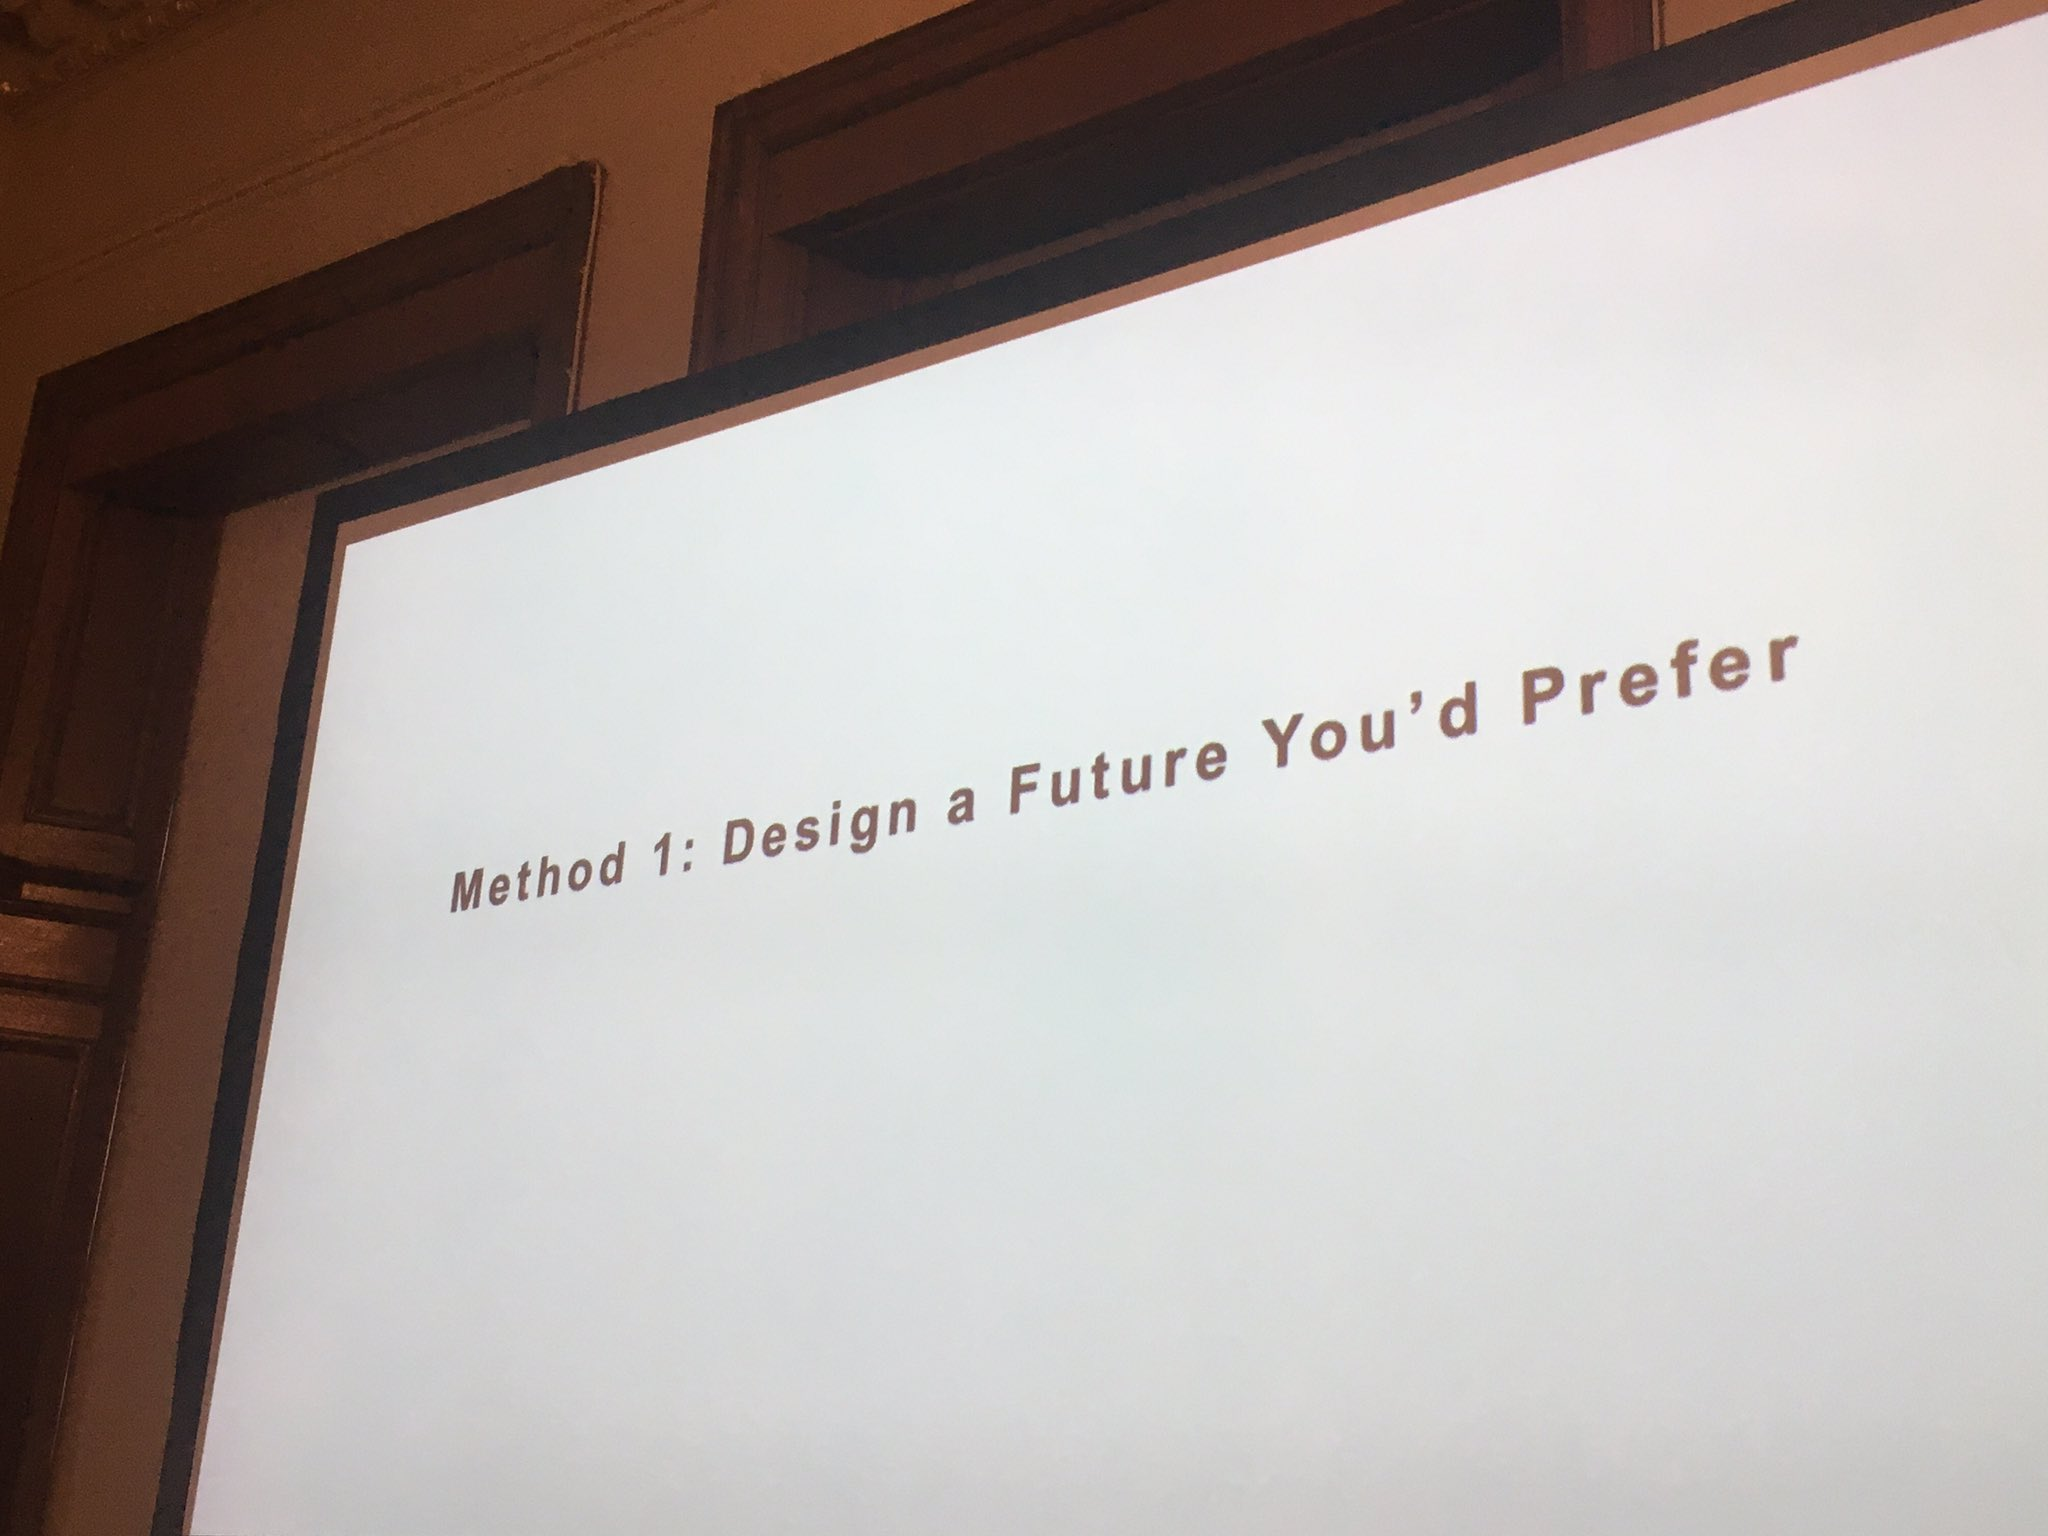 I will go with 'Method 1: Design a Future You'd Prefer' - inspiring paper by Monica Buchan-Ng #resonate #CircTran2016 https://t.co/nvGtDF5i95